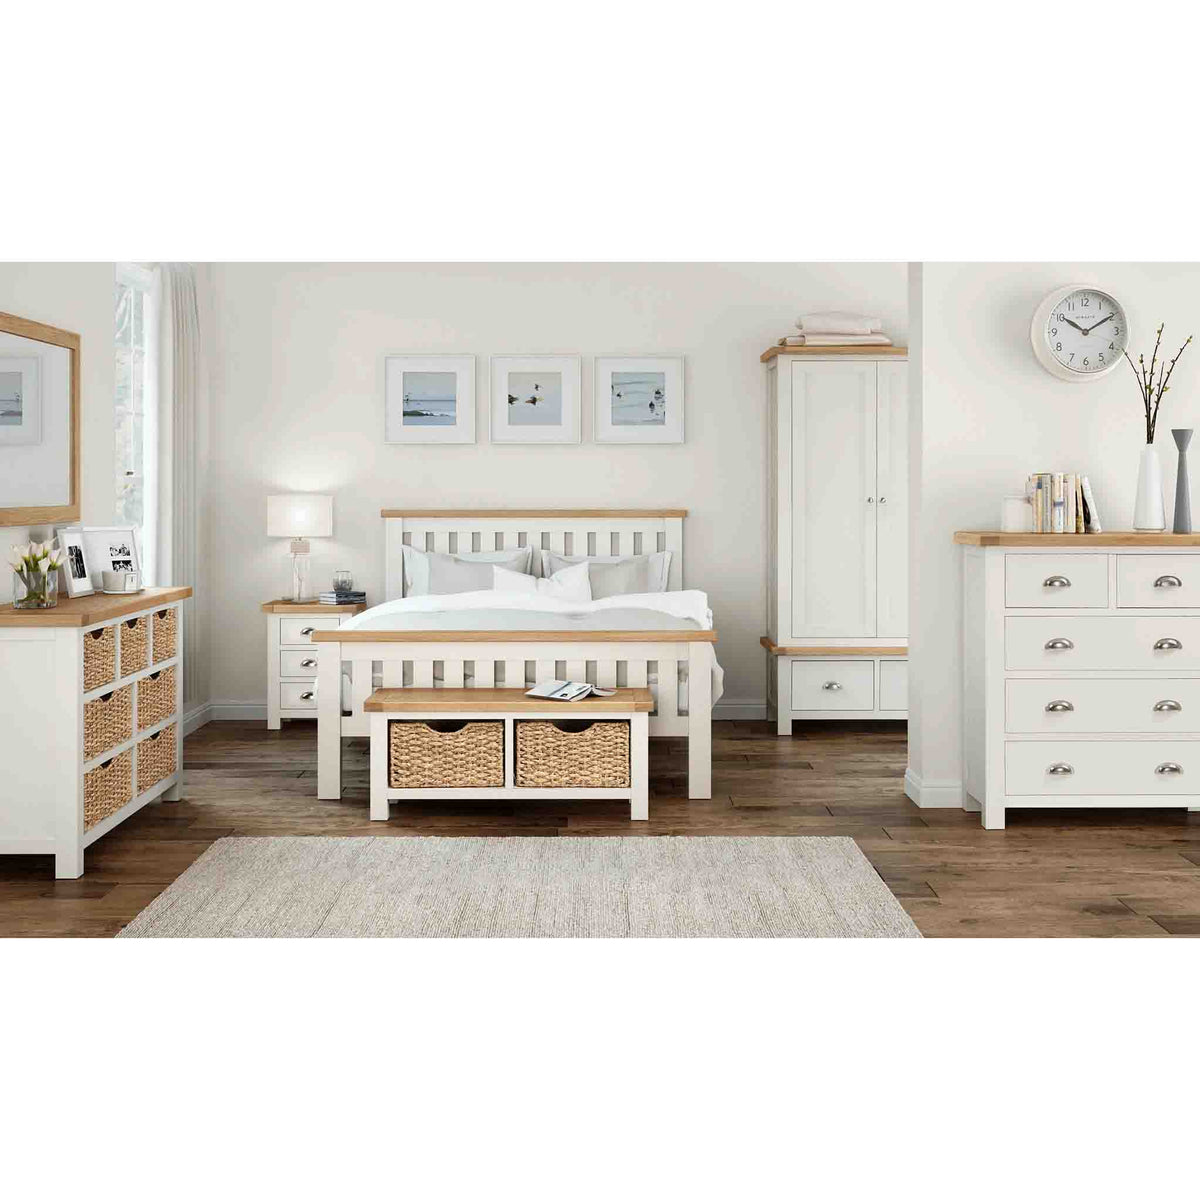 Decorative room view with The Daymer Cream 6 ft Super King Size Wooden Bed Frame